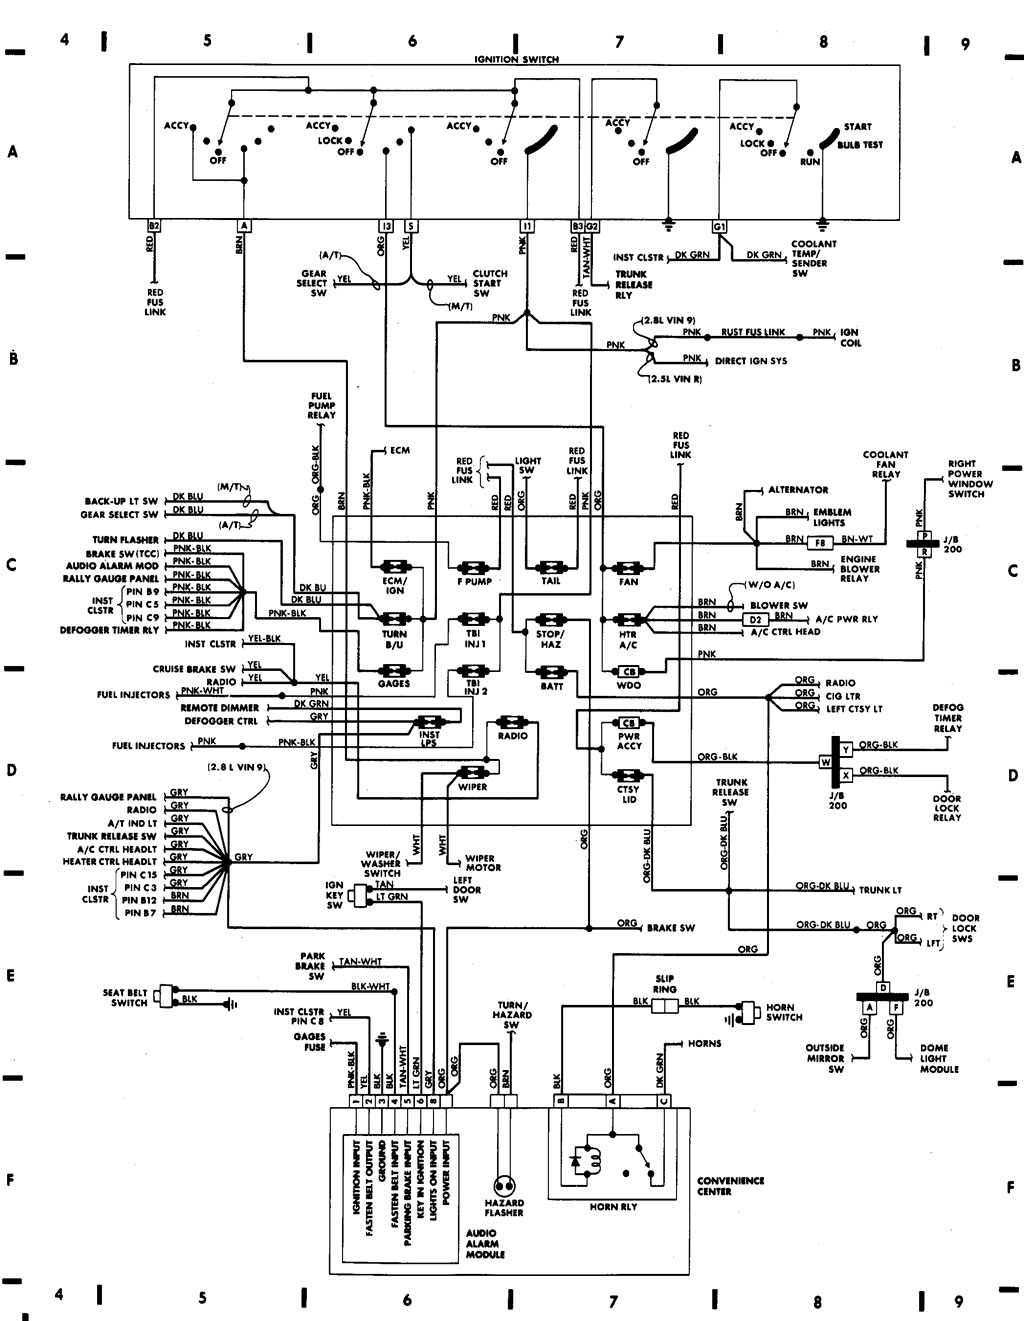 Fiero Wiring Diagram And Schematics Cruise Control